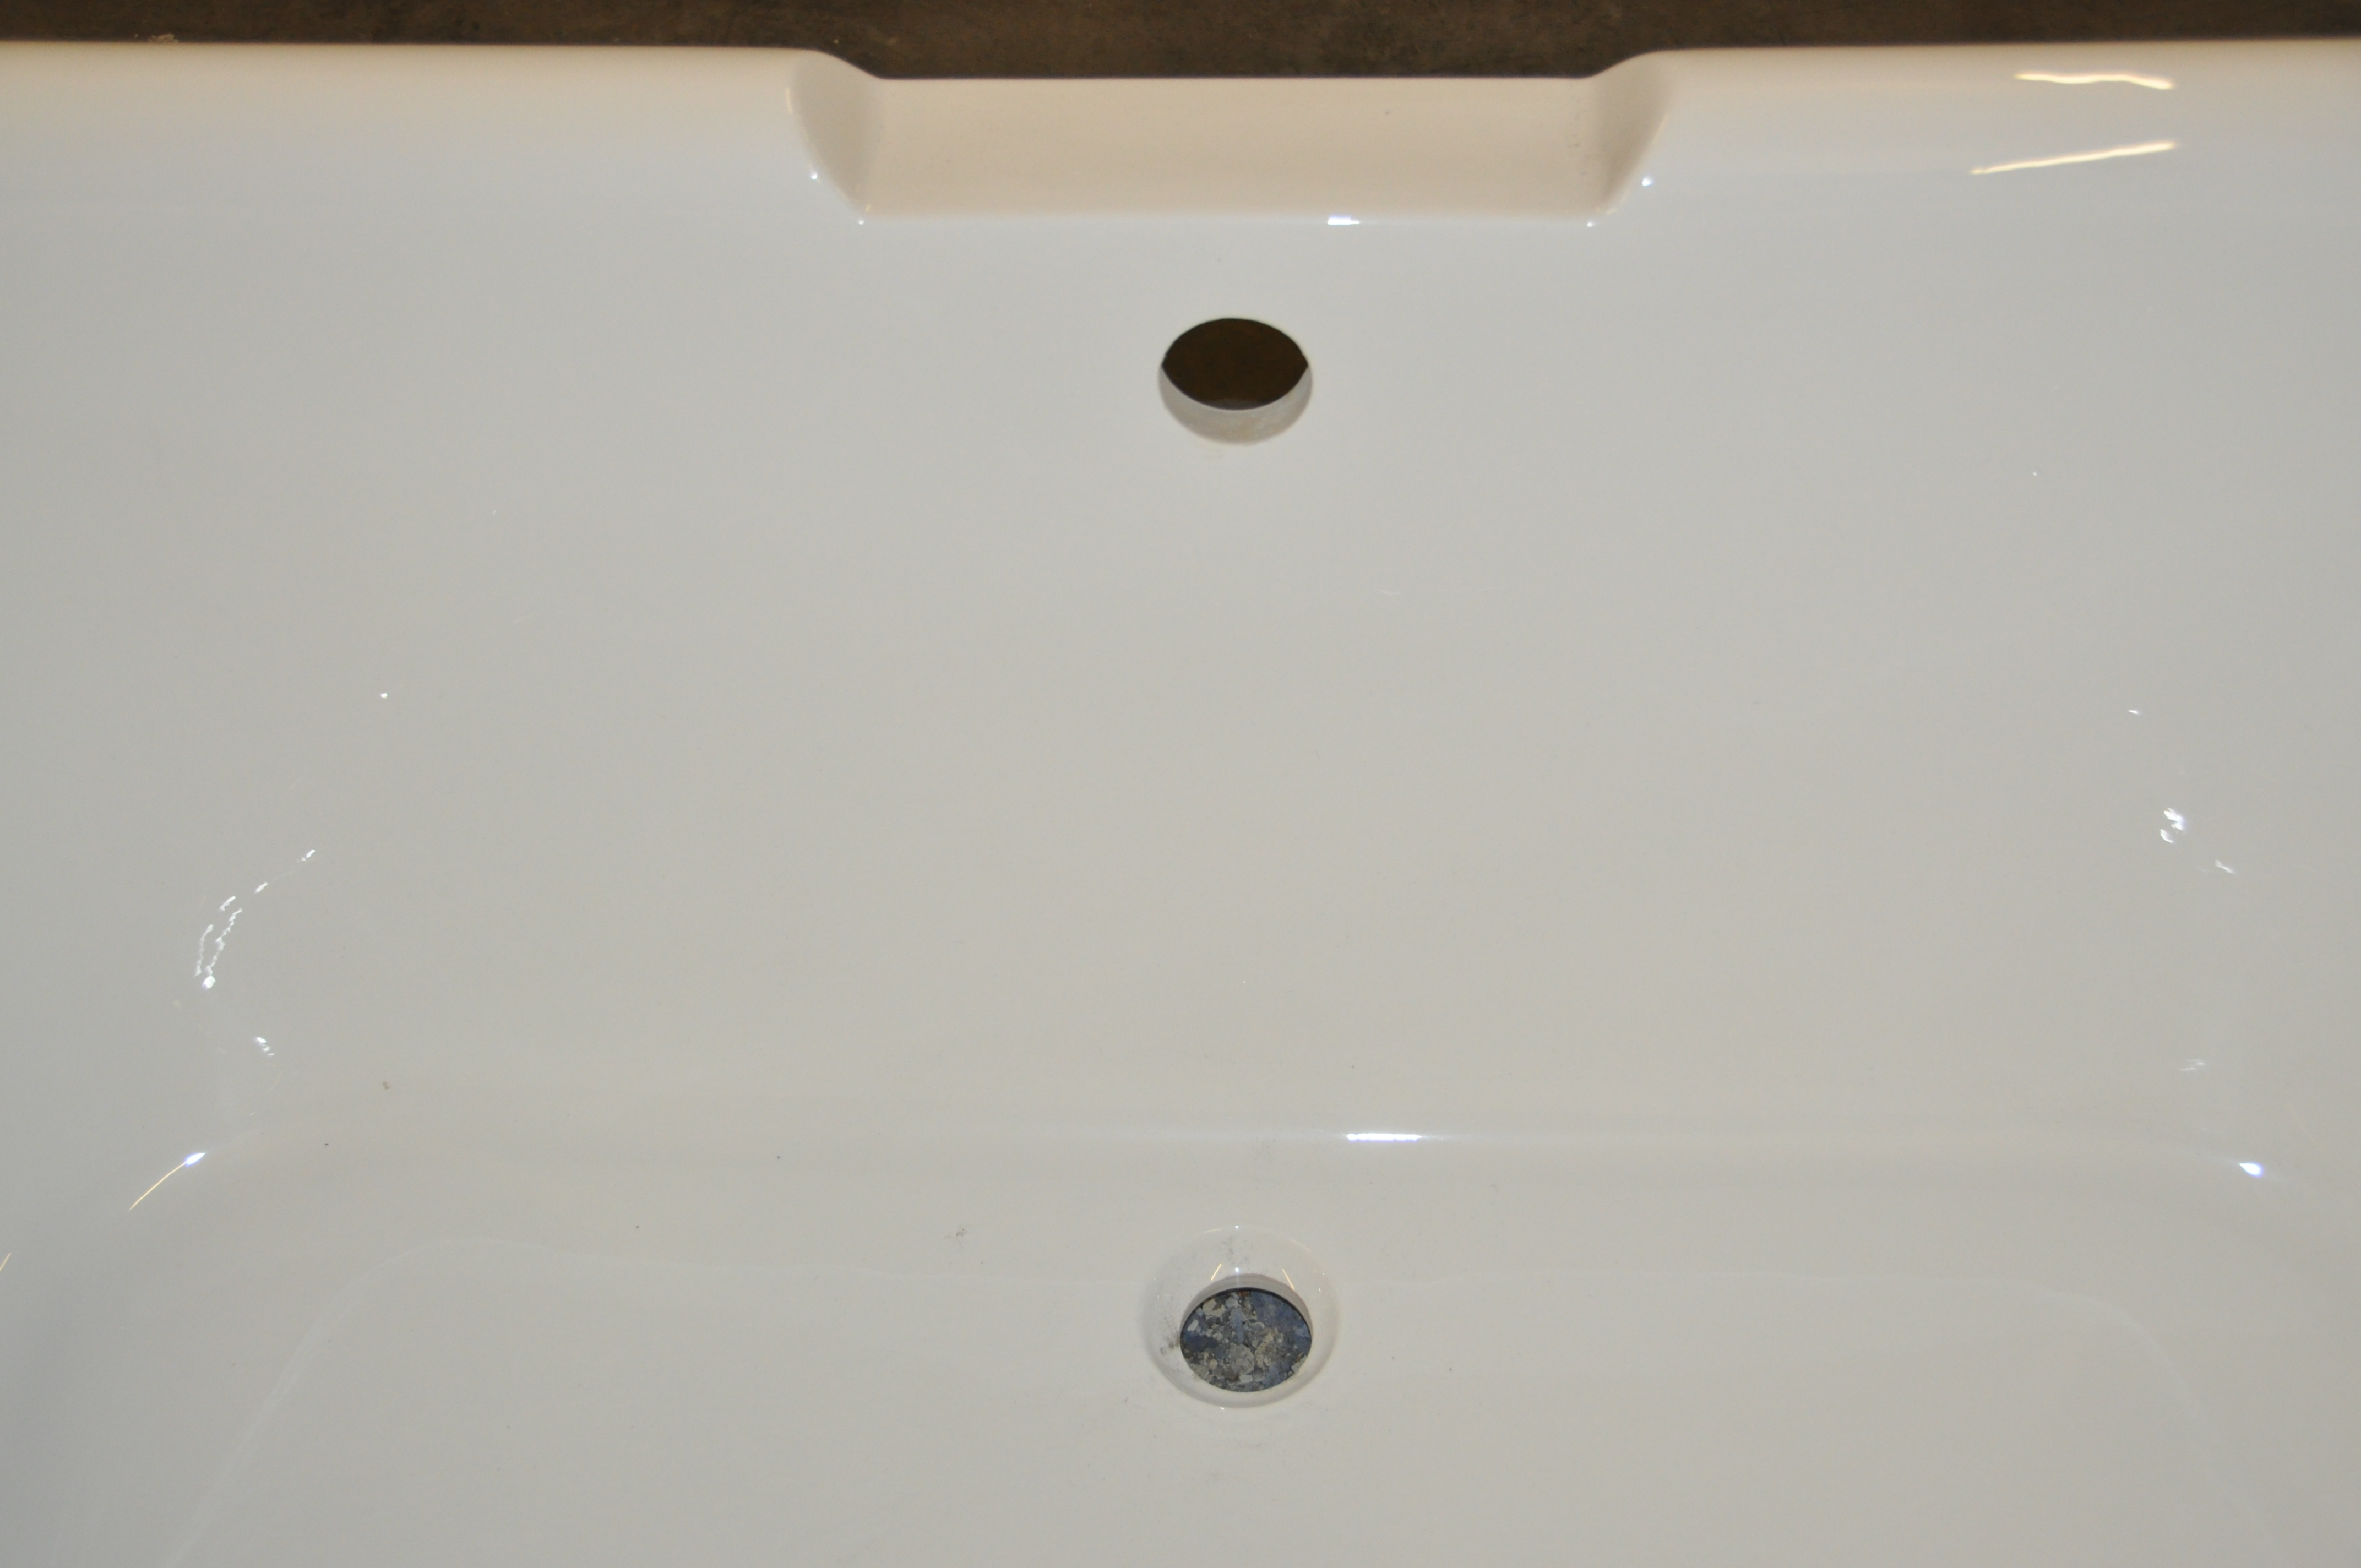 1 X Freestanding Roll Top Bath With Central Waste And Tap Section CL022